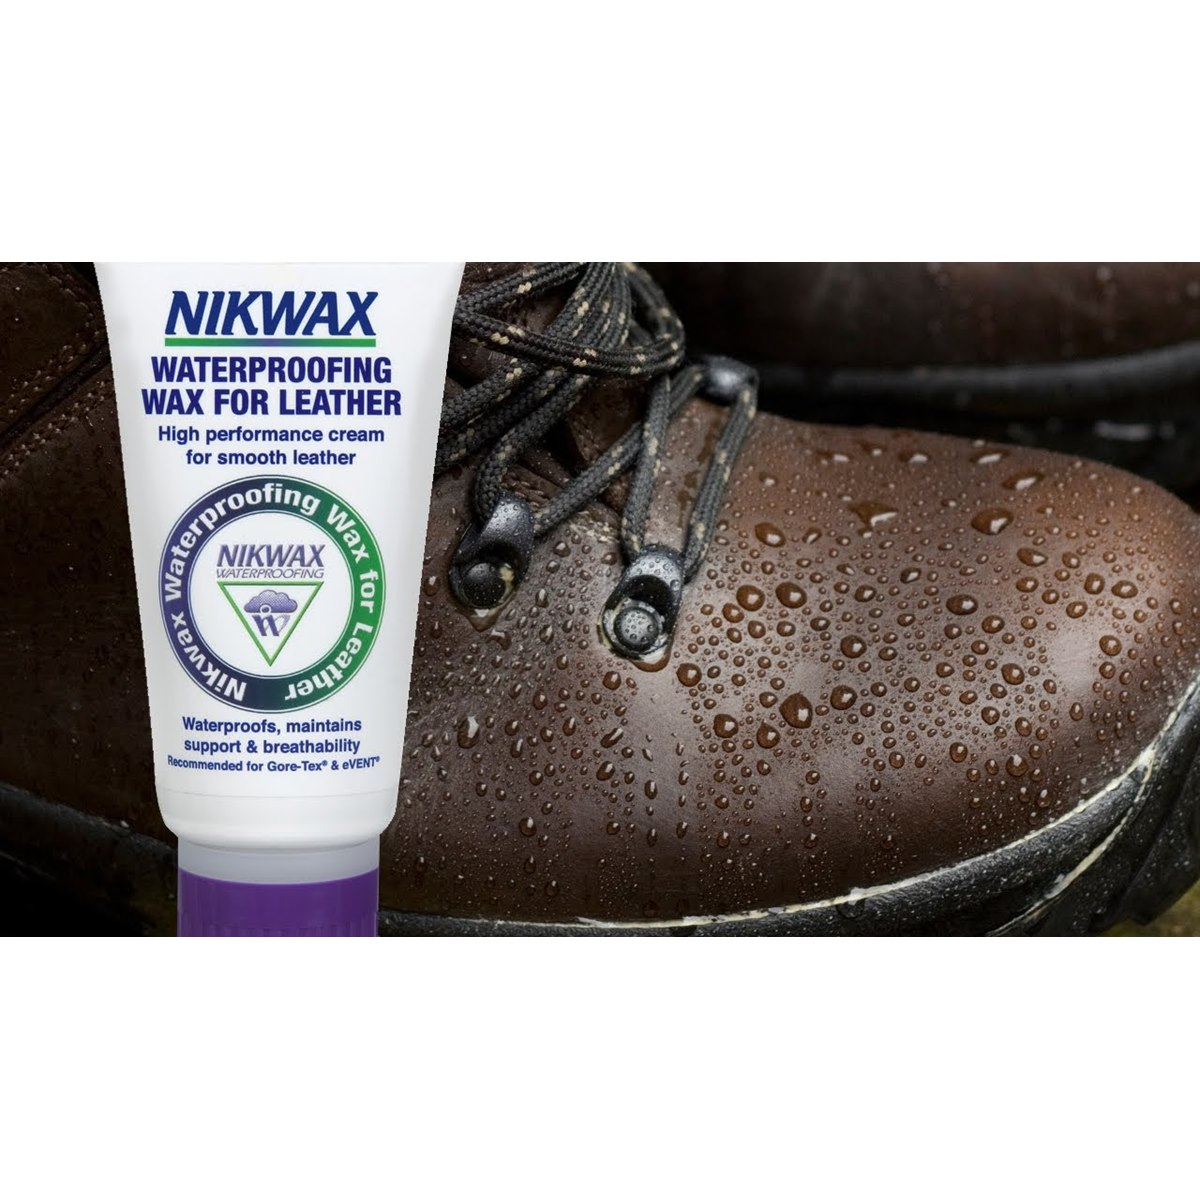 Nikwax Waterproofing Wax for Smooth Leather